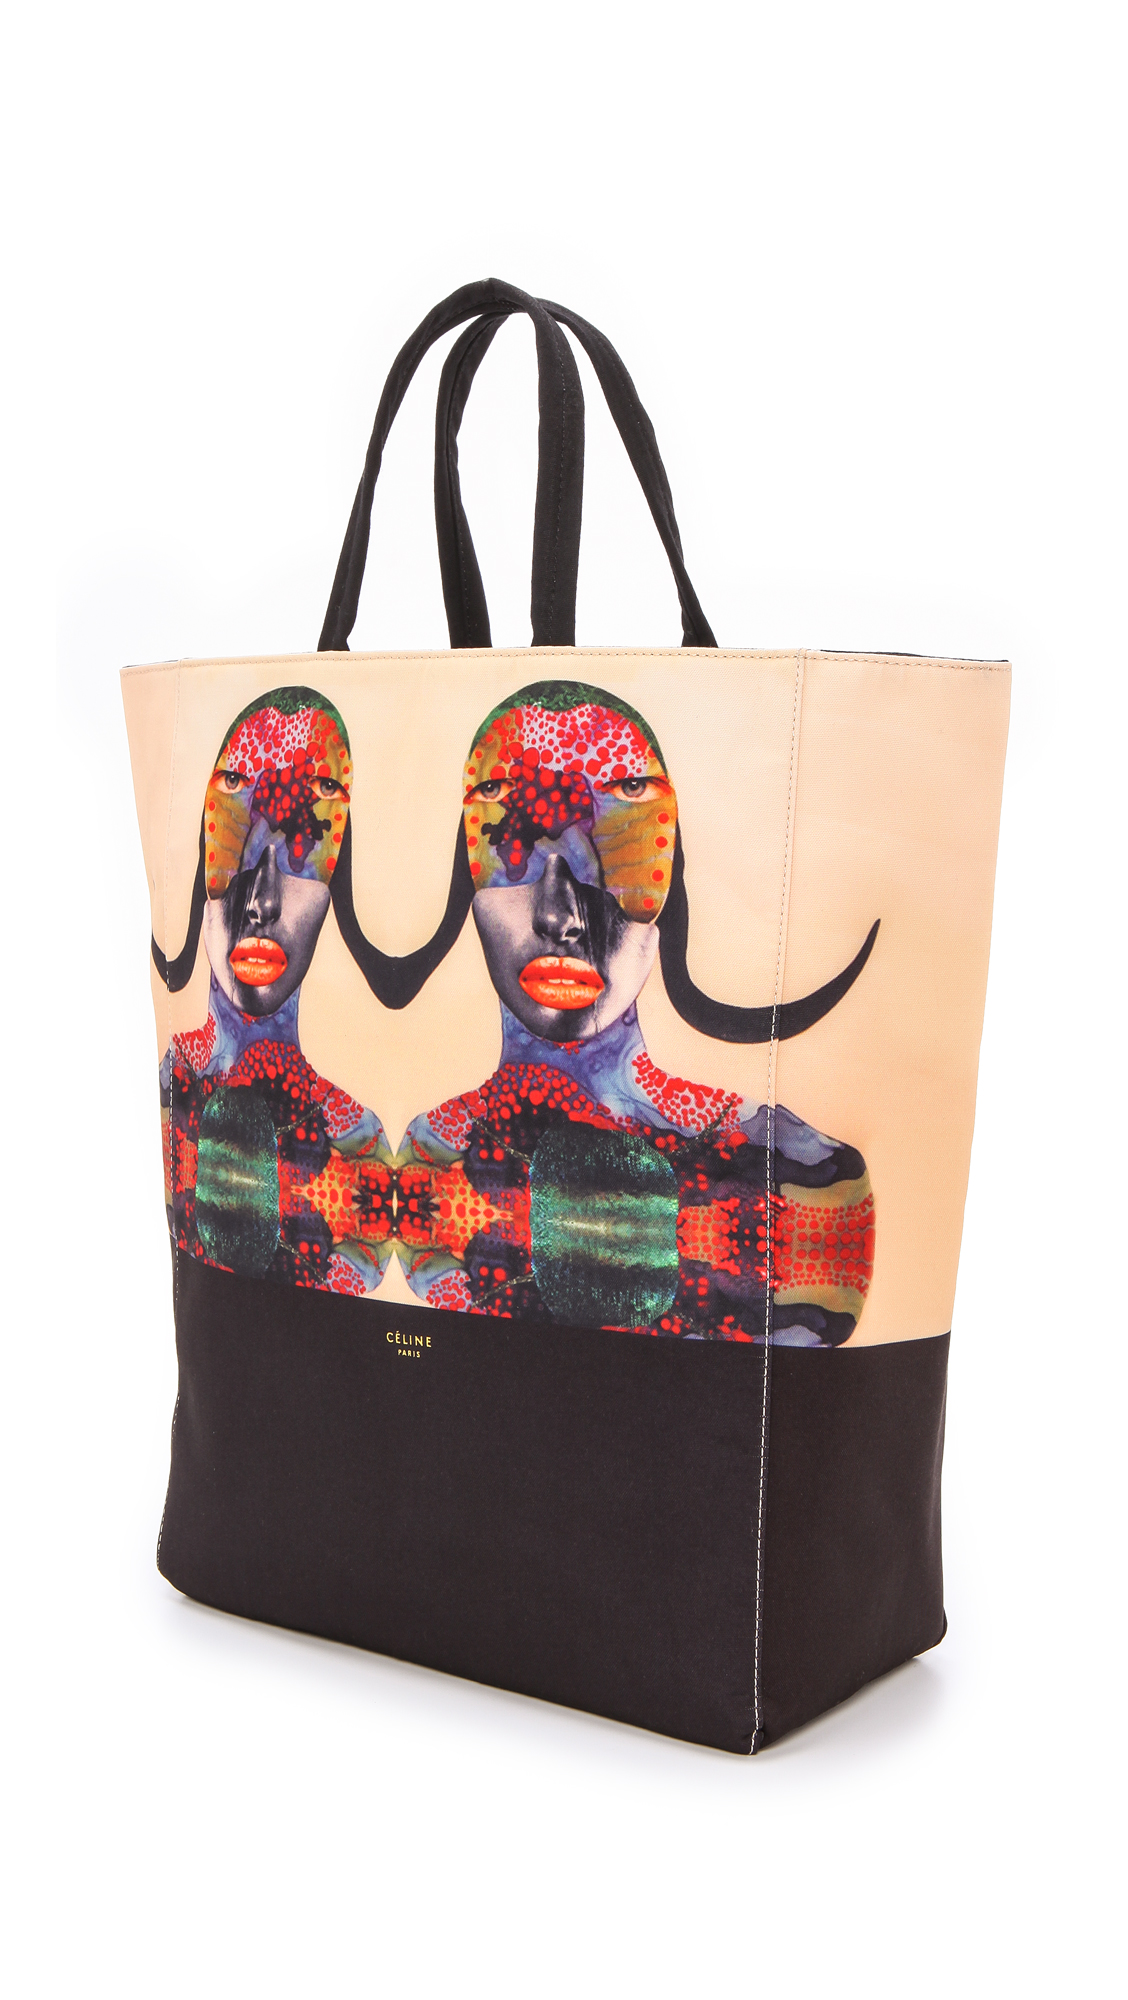 Born Free Celine Tote Bag | SHOPBOP